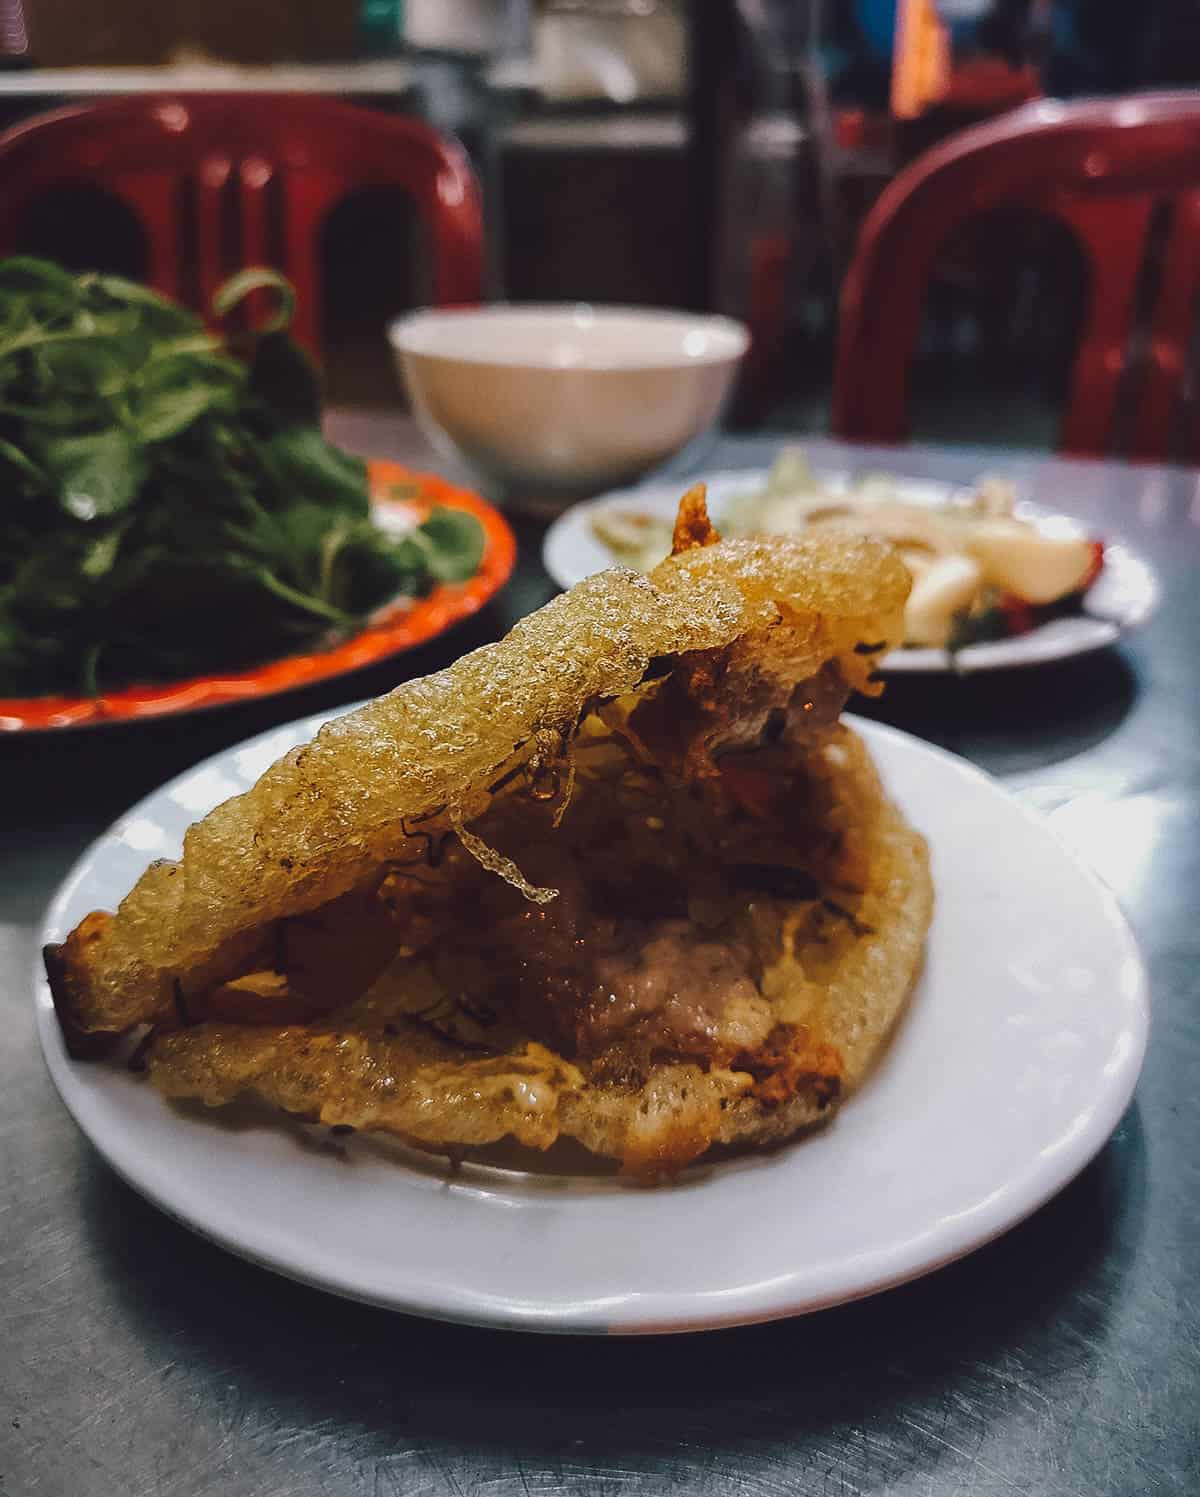 Banh khoai at Lac Thien in Hue, Vietnam